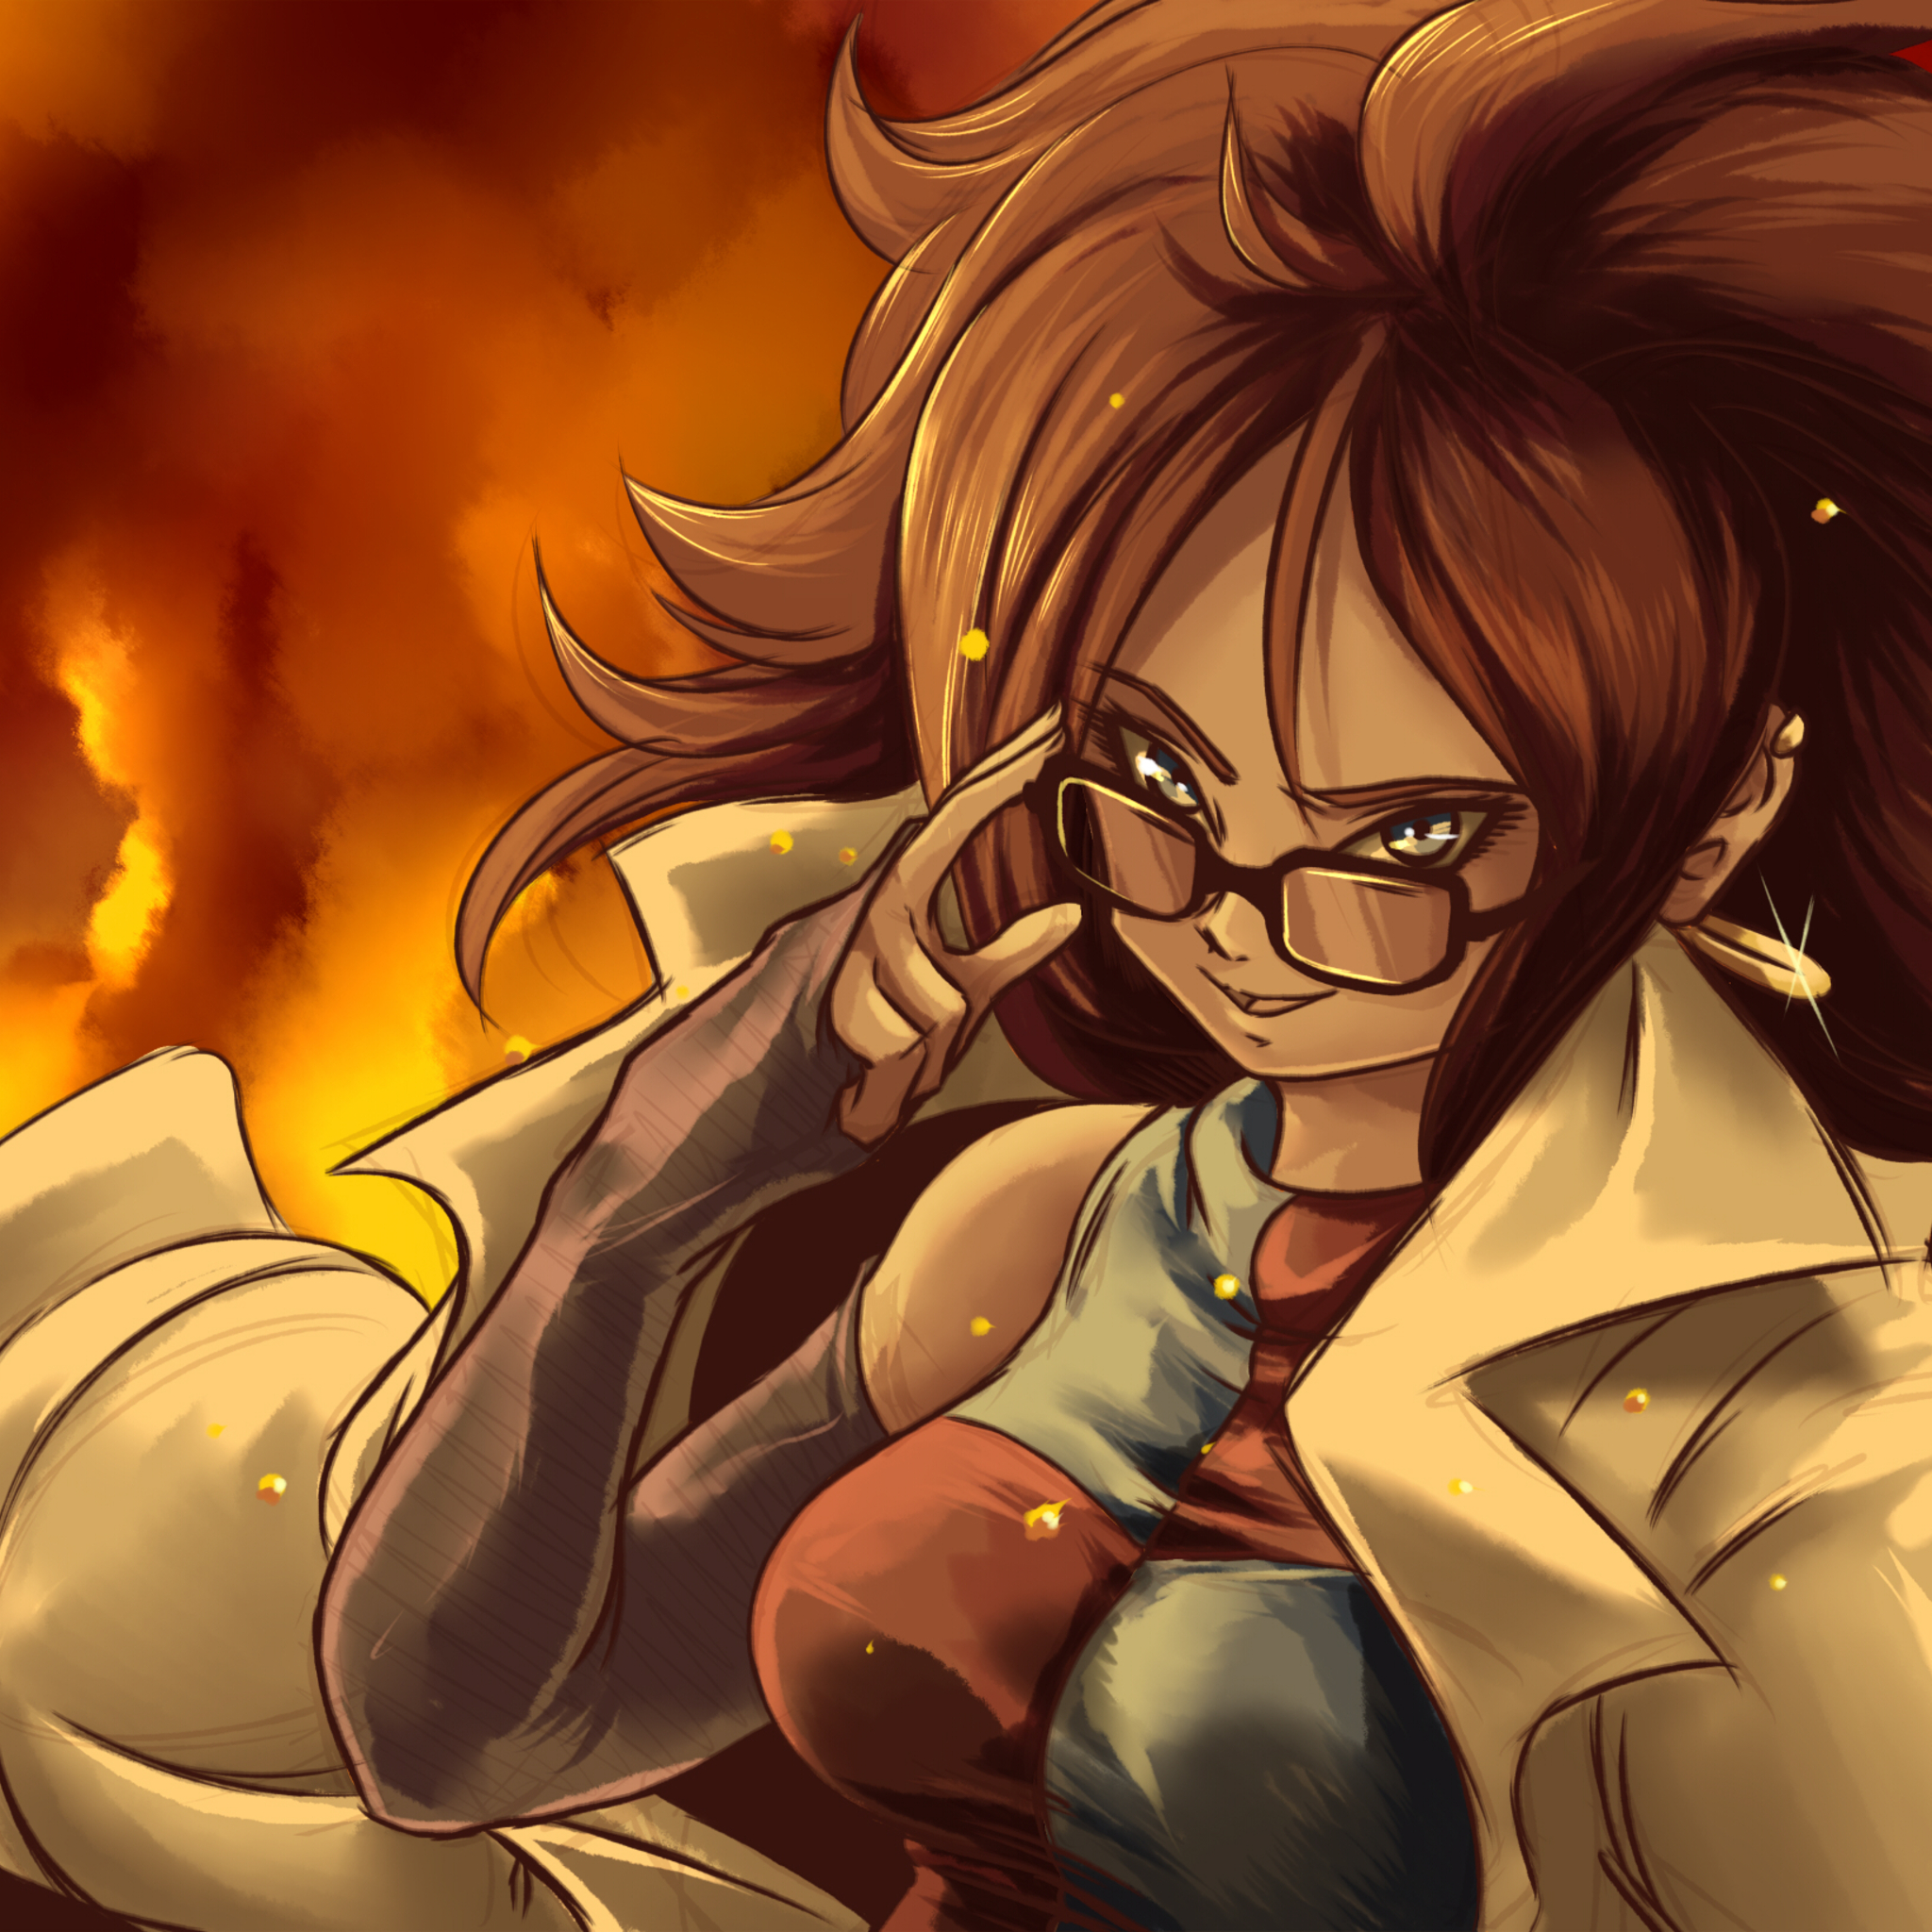 2048x2048 Android 21 Dragon Ball Fighterz Ipad Air HD 4k